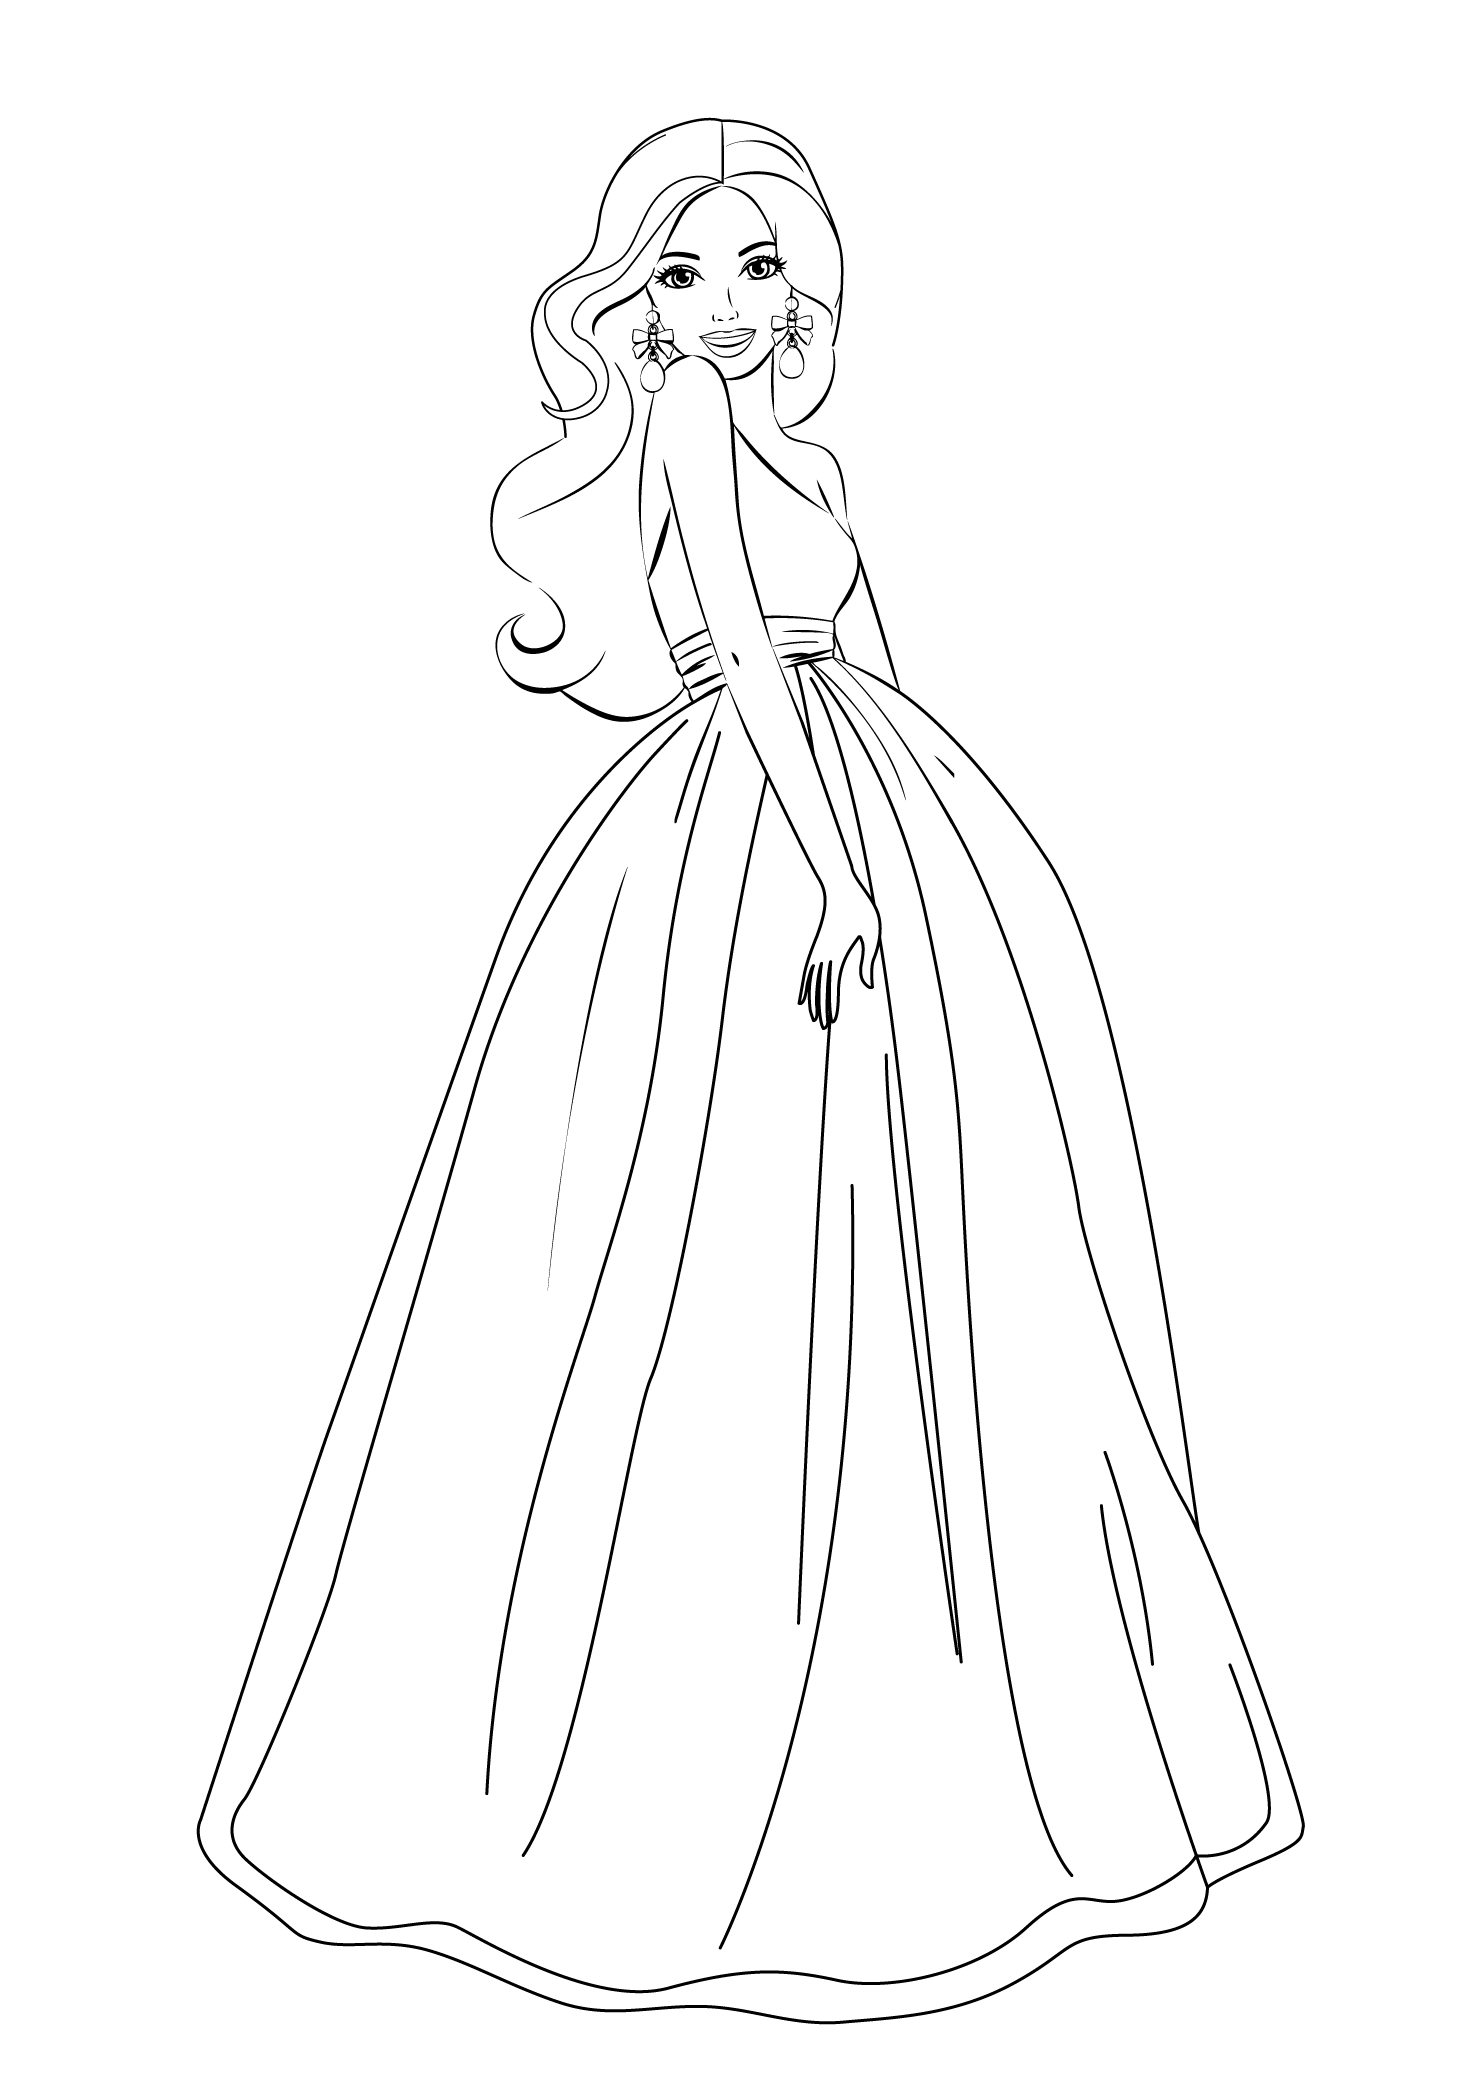 Barbie colouring in online free - Barbie Coloring Pages For Girls Free Printable